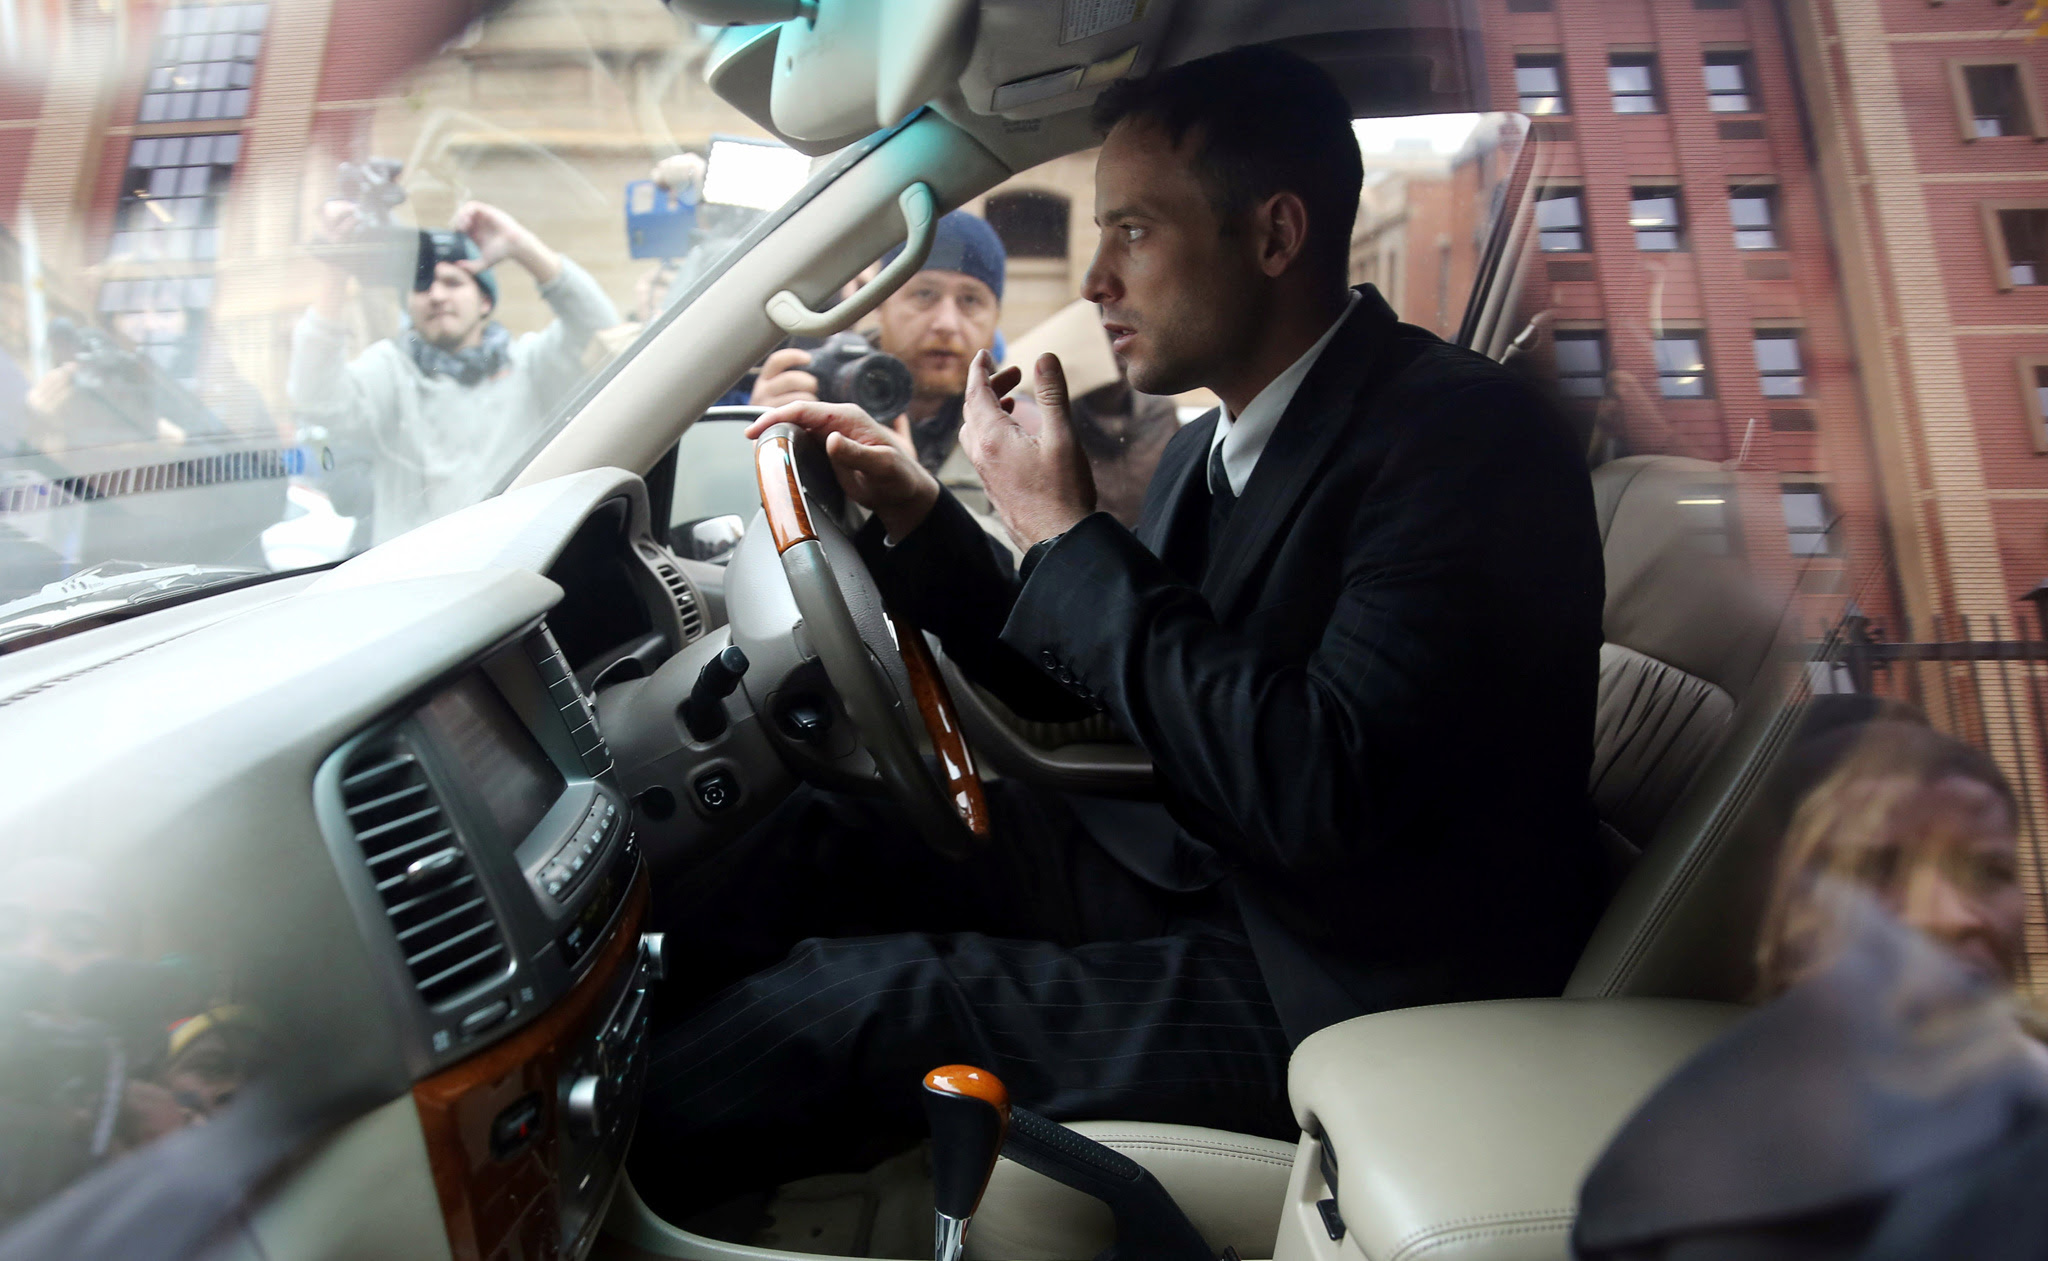 Former Paralympian Oscar Pistorius leaves after the second day of his sentencing for the murder of his girlfriend Reeva Steenkamp, at Pretoria High Court, South Africa